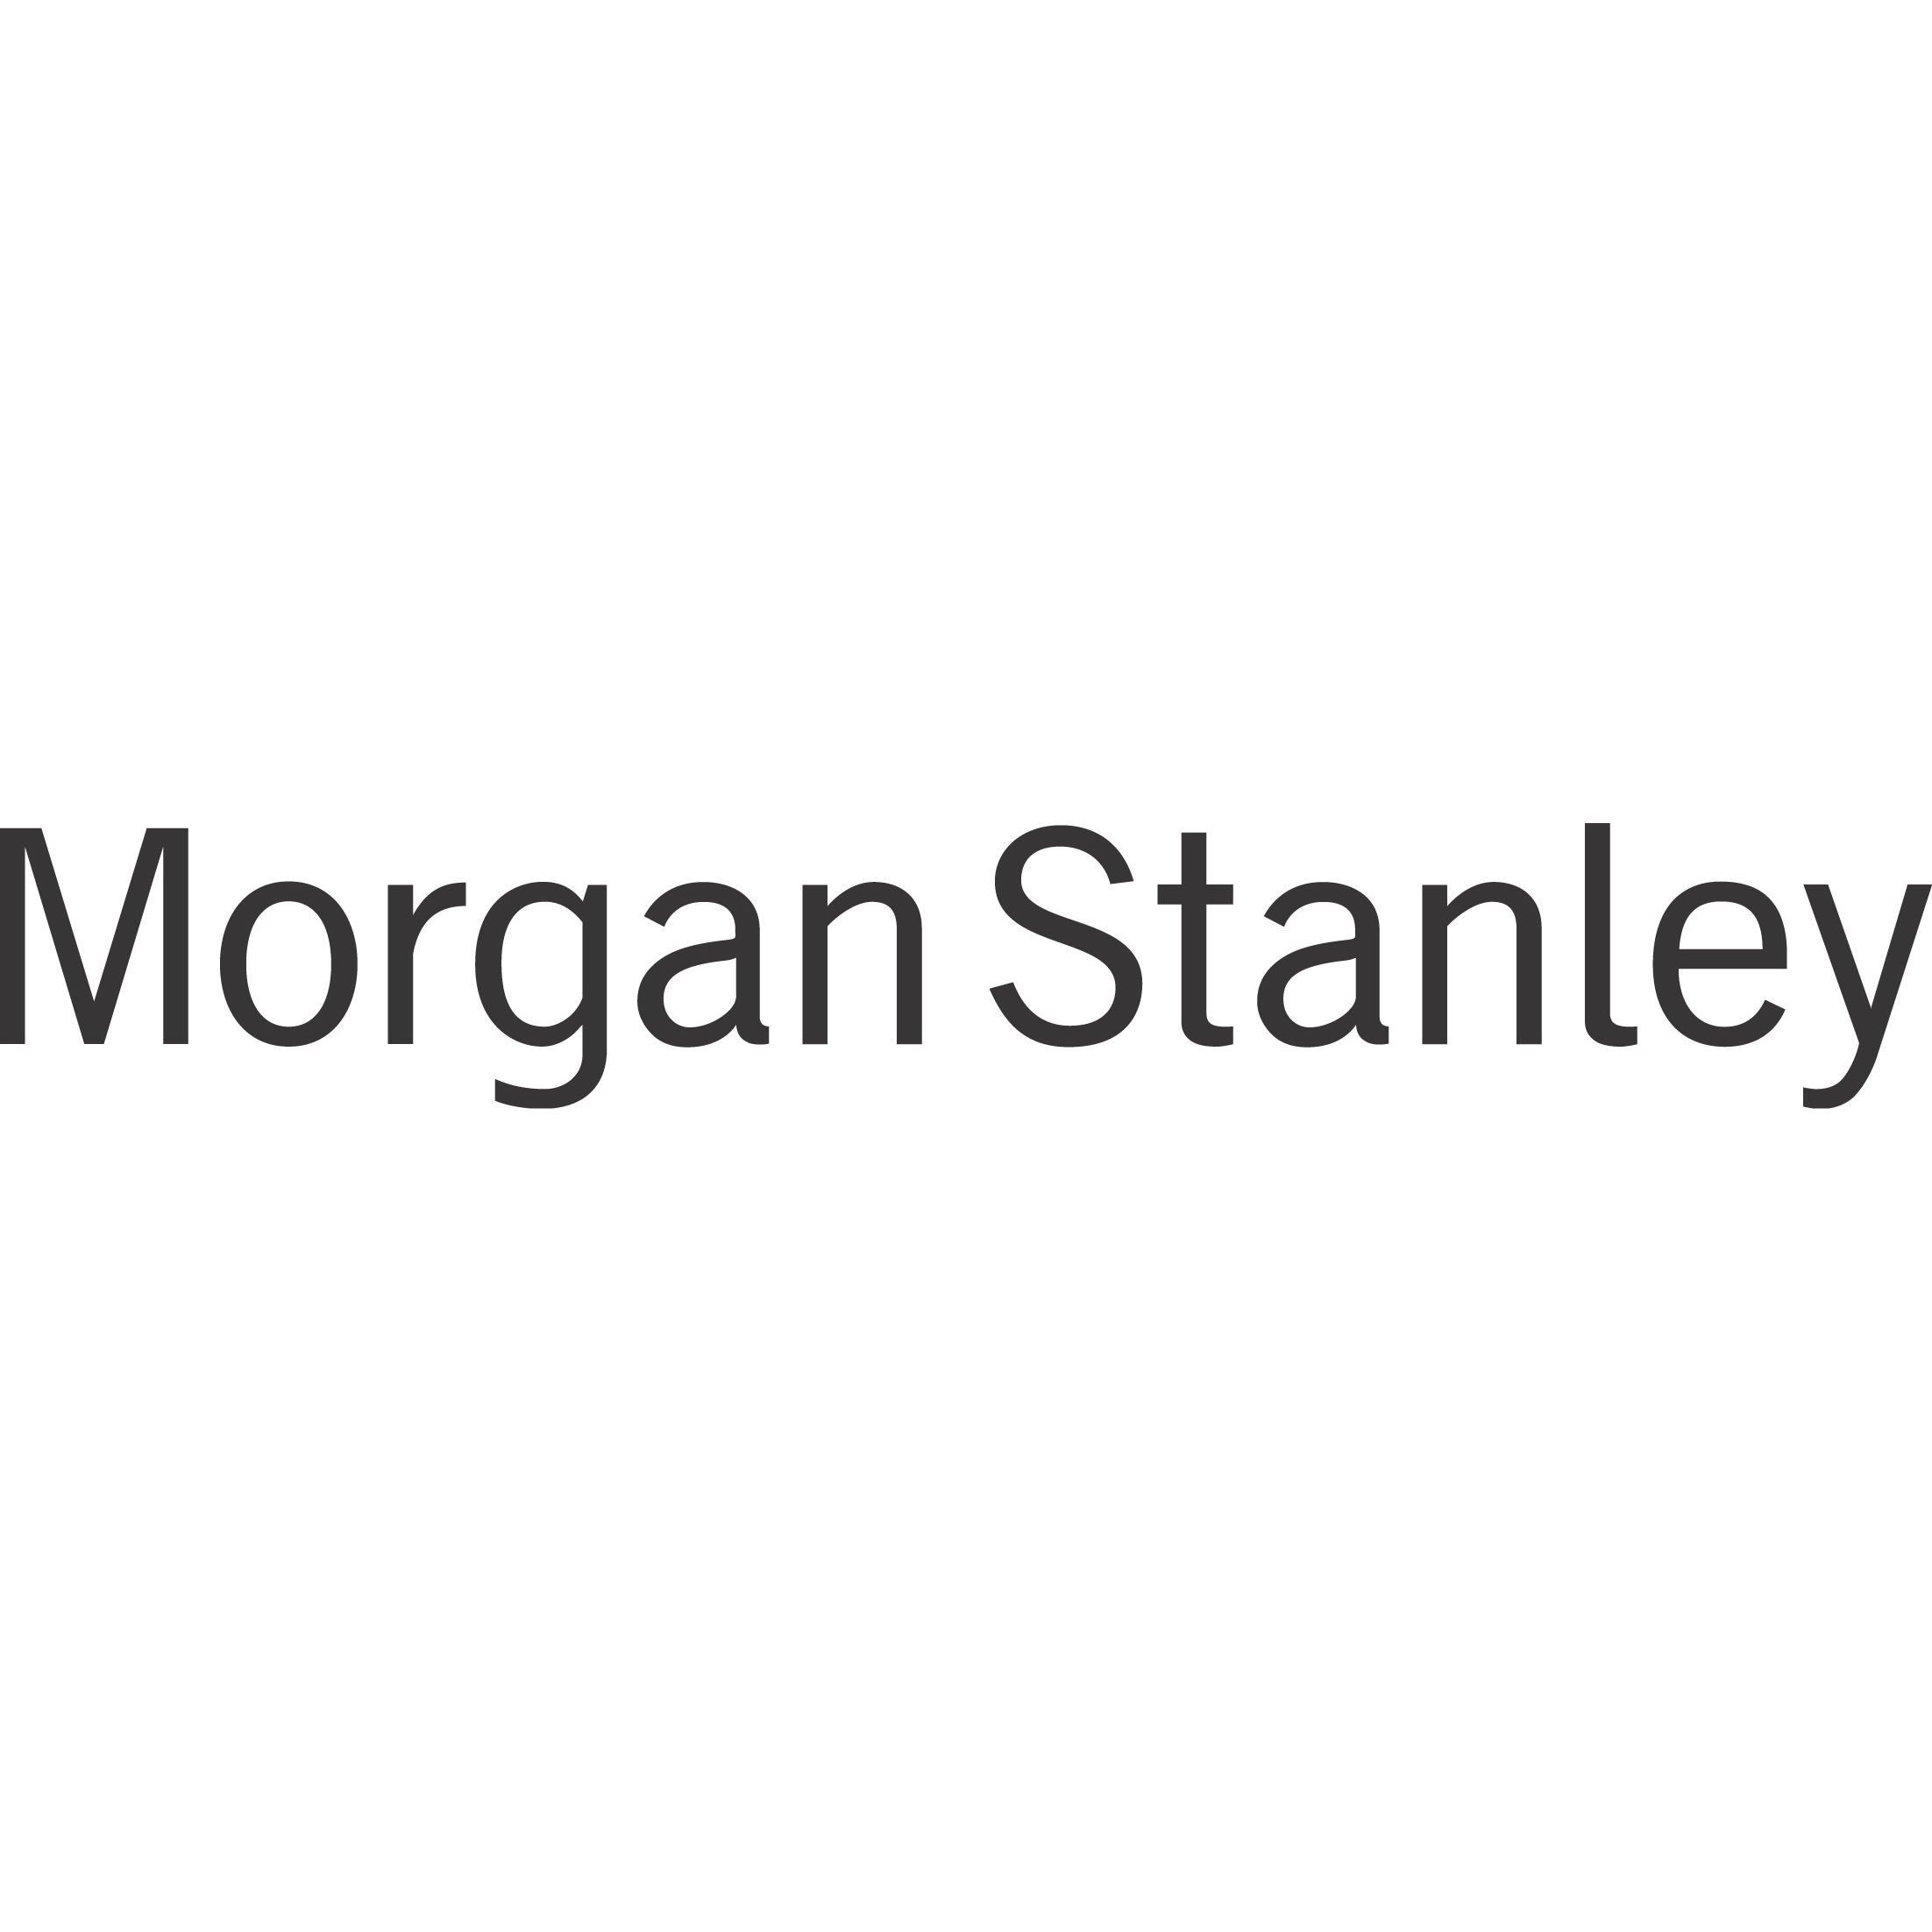 Alexis Lopez - Morgan Stanley | Financial Advisor in Sarasota,Florida